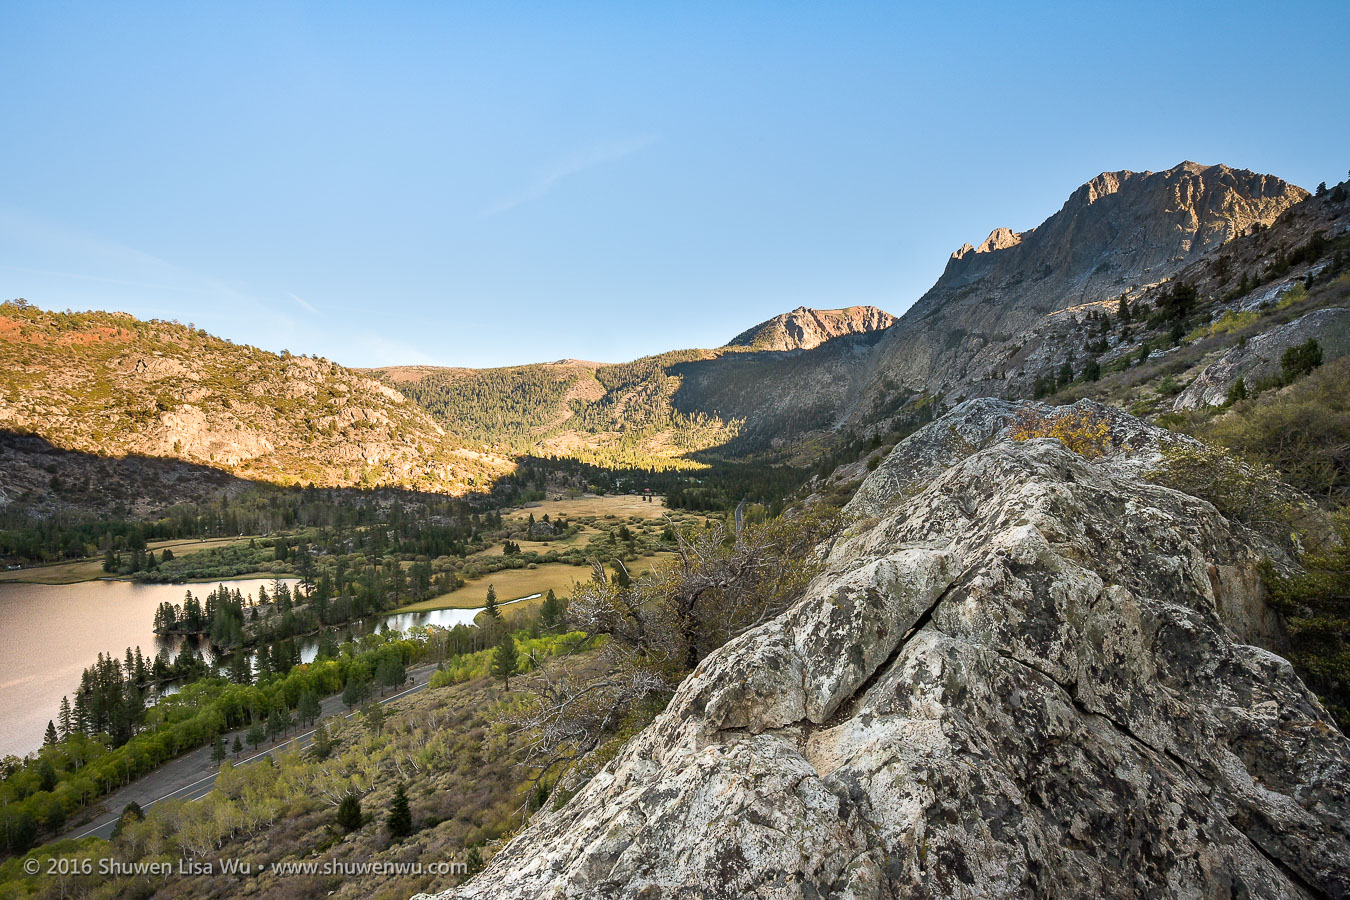 Above Silver Lake along the Rush Creek Trail, June Lake, California, September 2016.